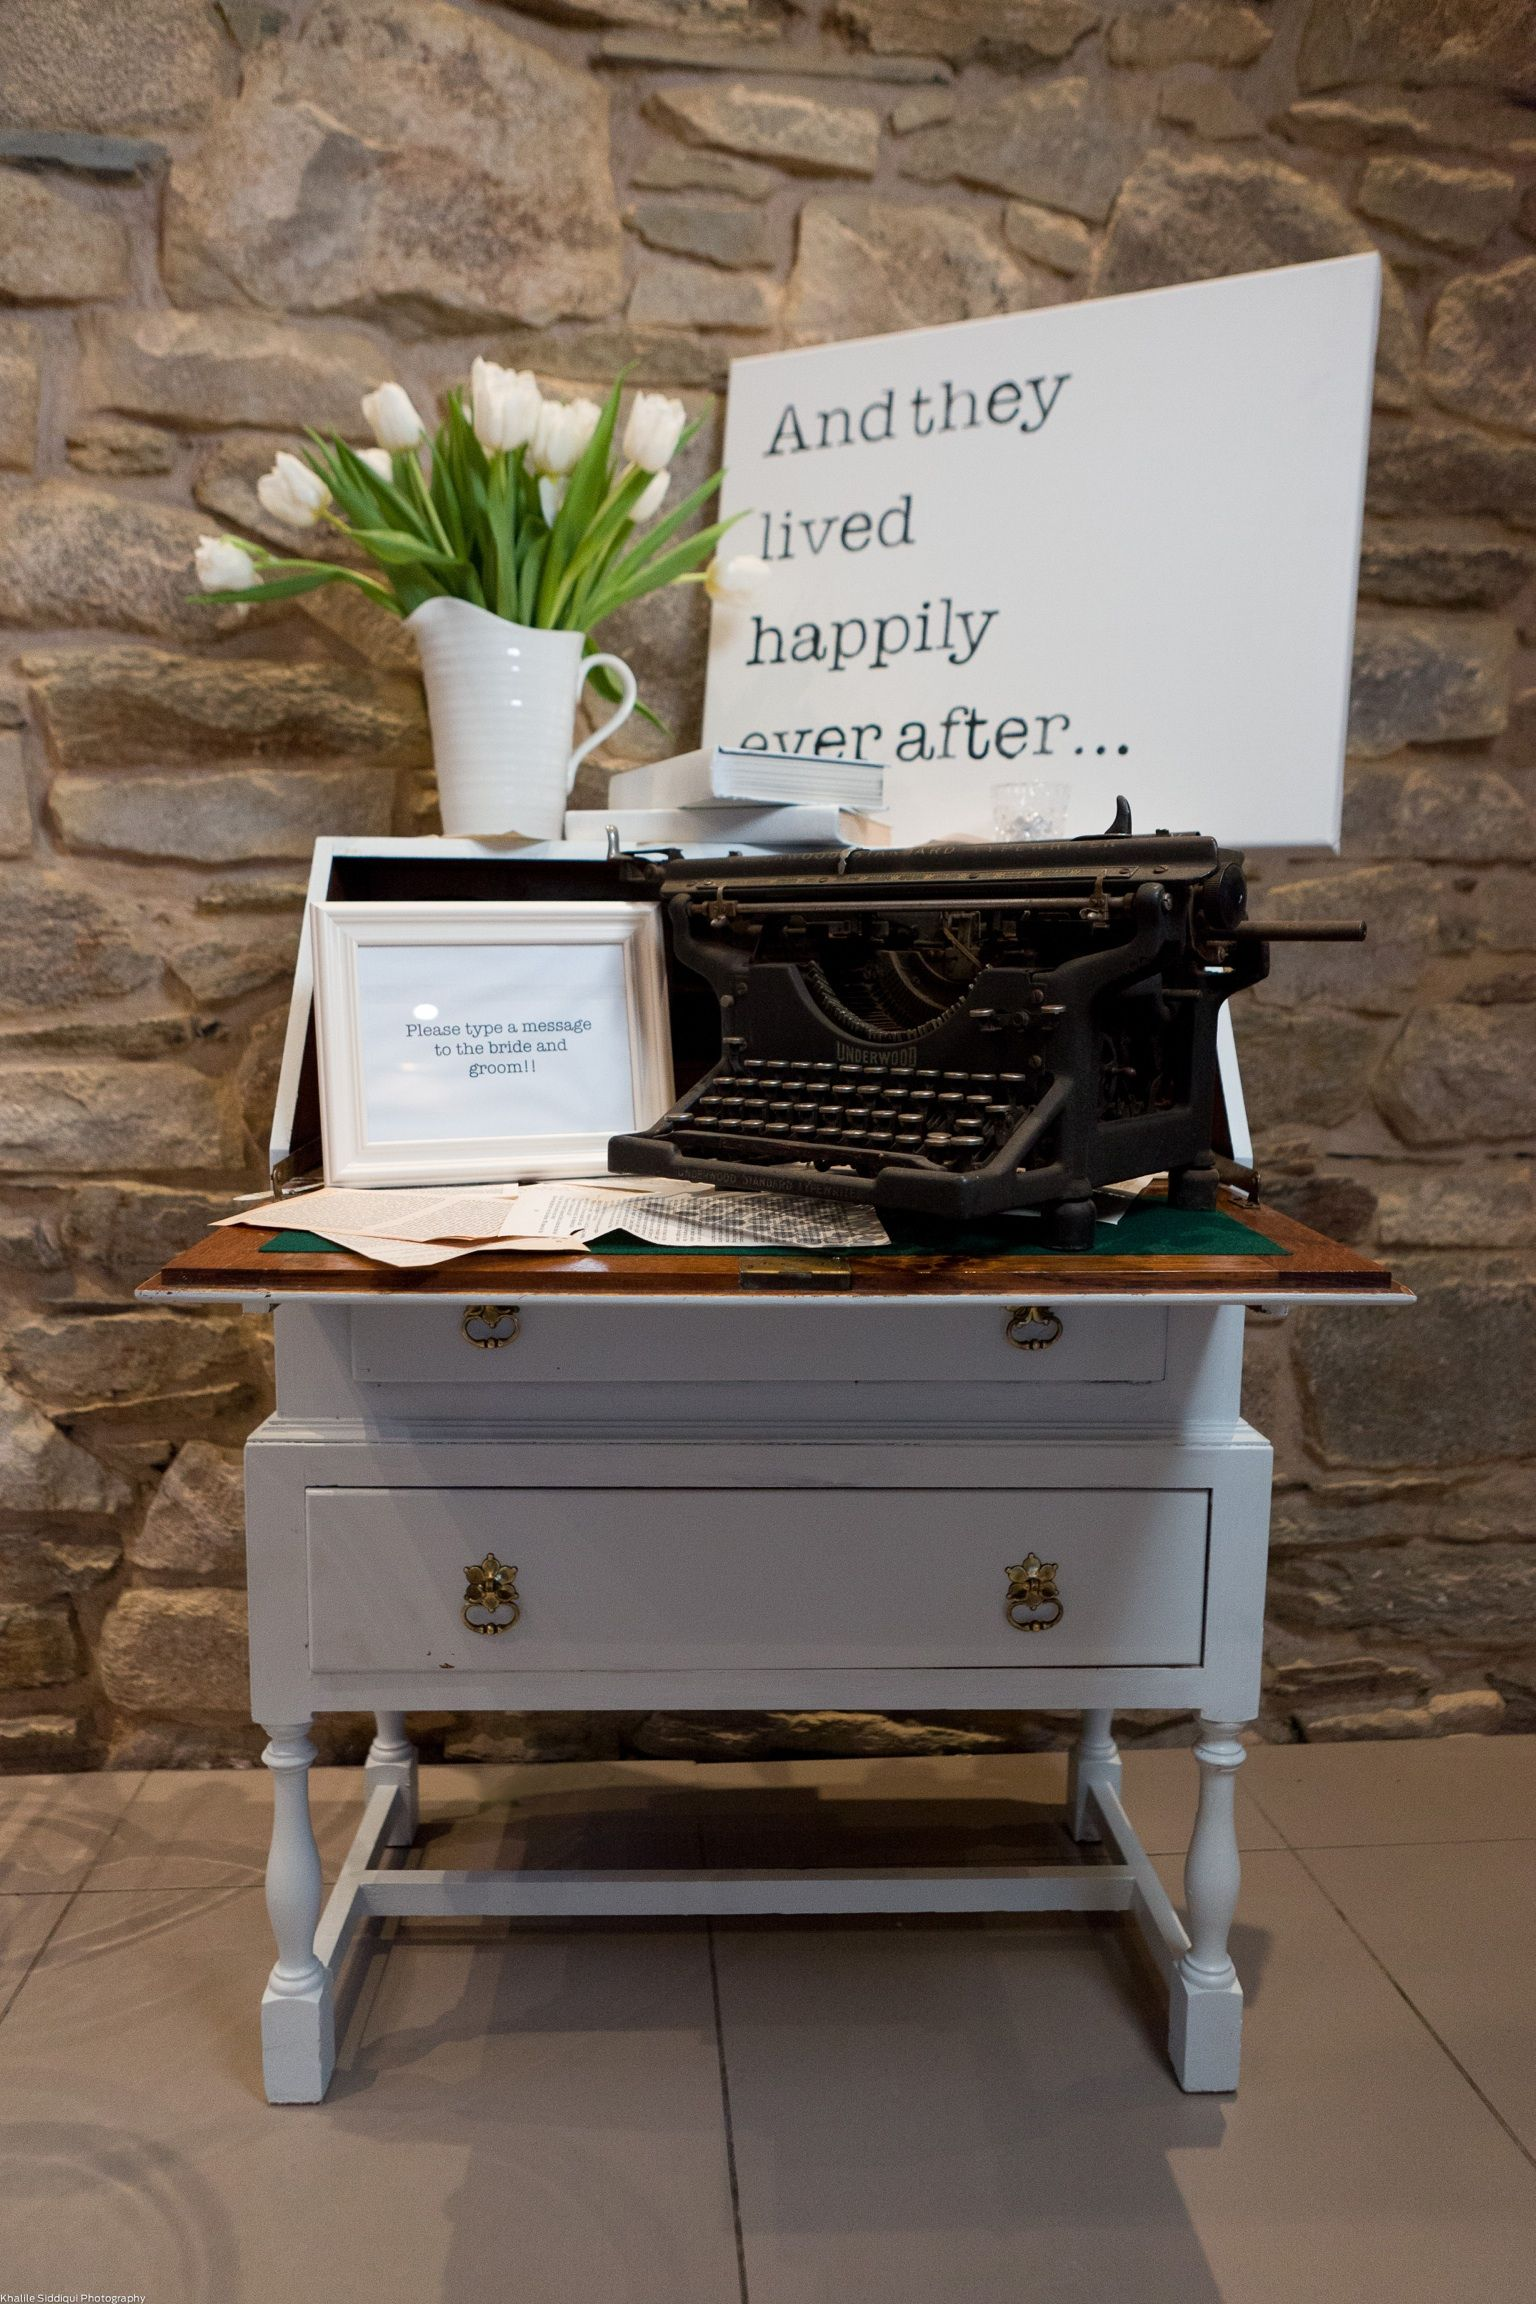 Typewriter Guest Book Not The Actual One You Saw